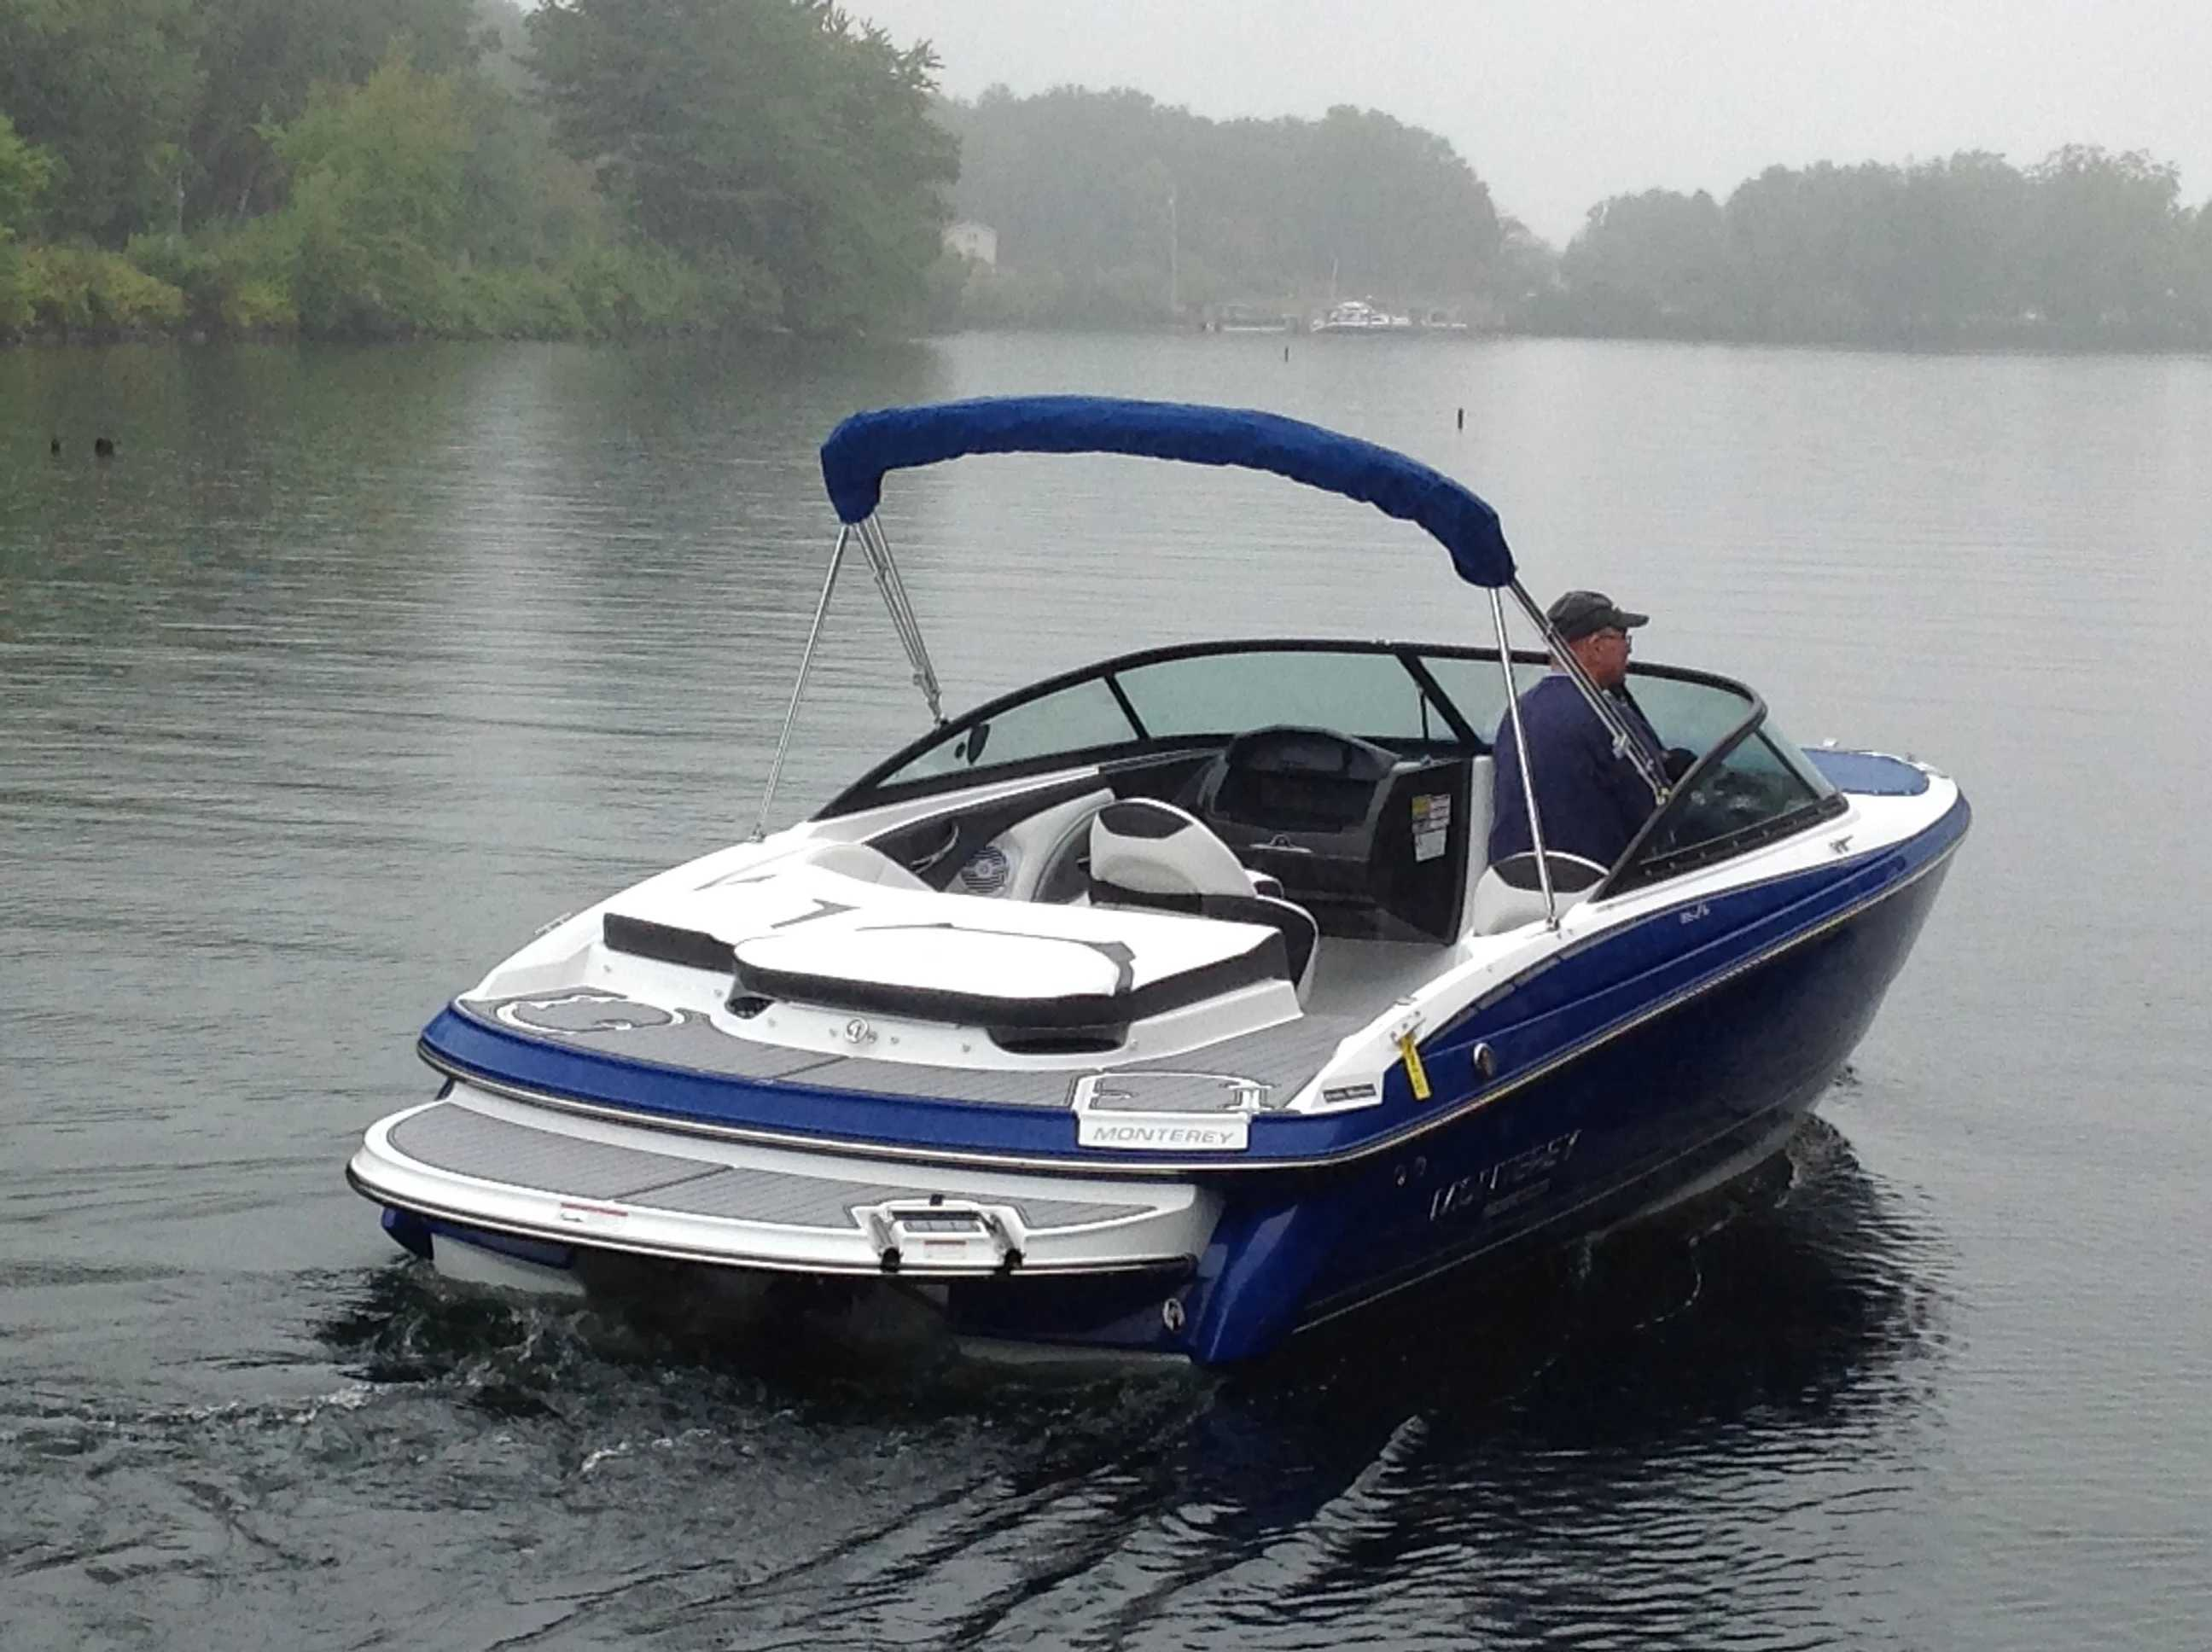 2021 Monterey boat for sale, model of the boat is 224FS & Image # 3 of 11